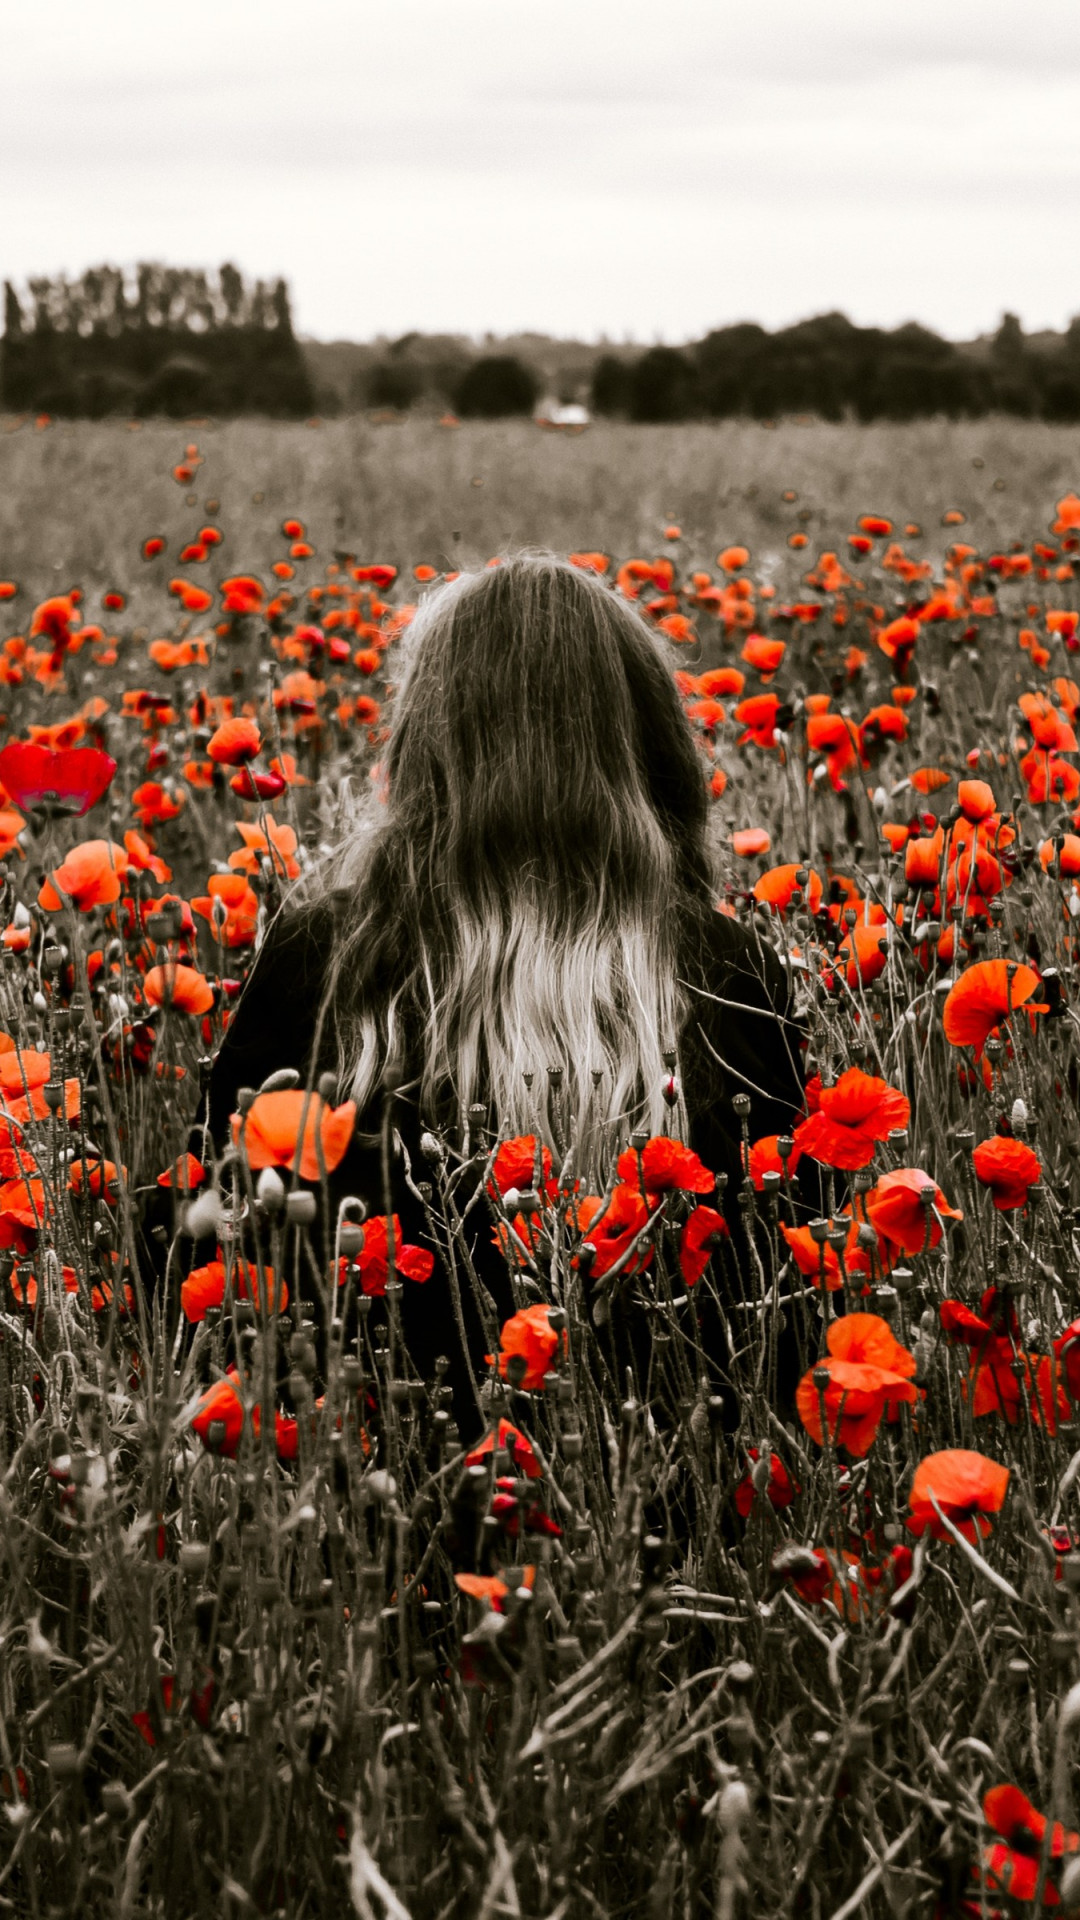 Girl in the field with red poppies wallpaper 1080x1920